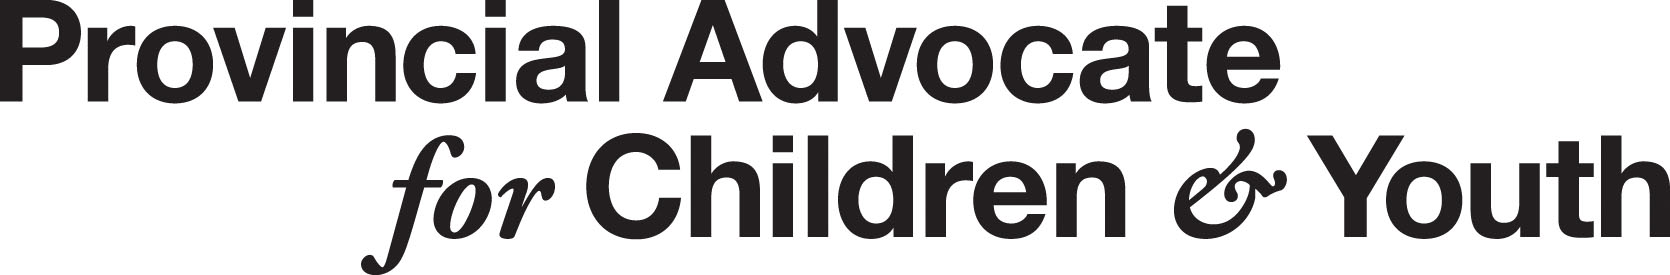 Office of the Provincial Advocate for Children and Youth